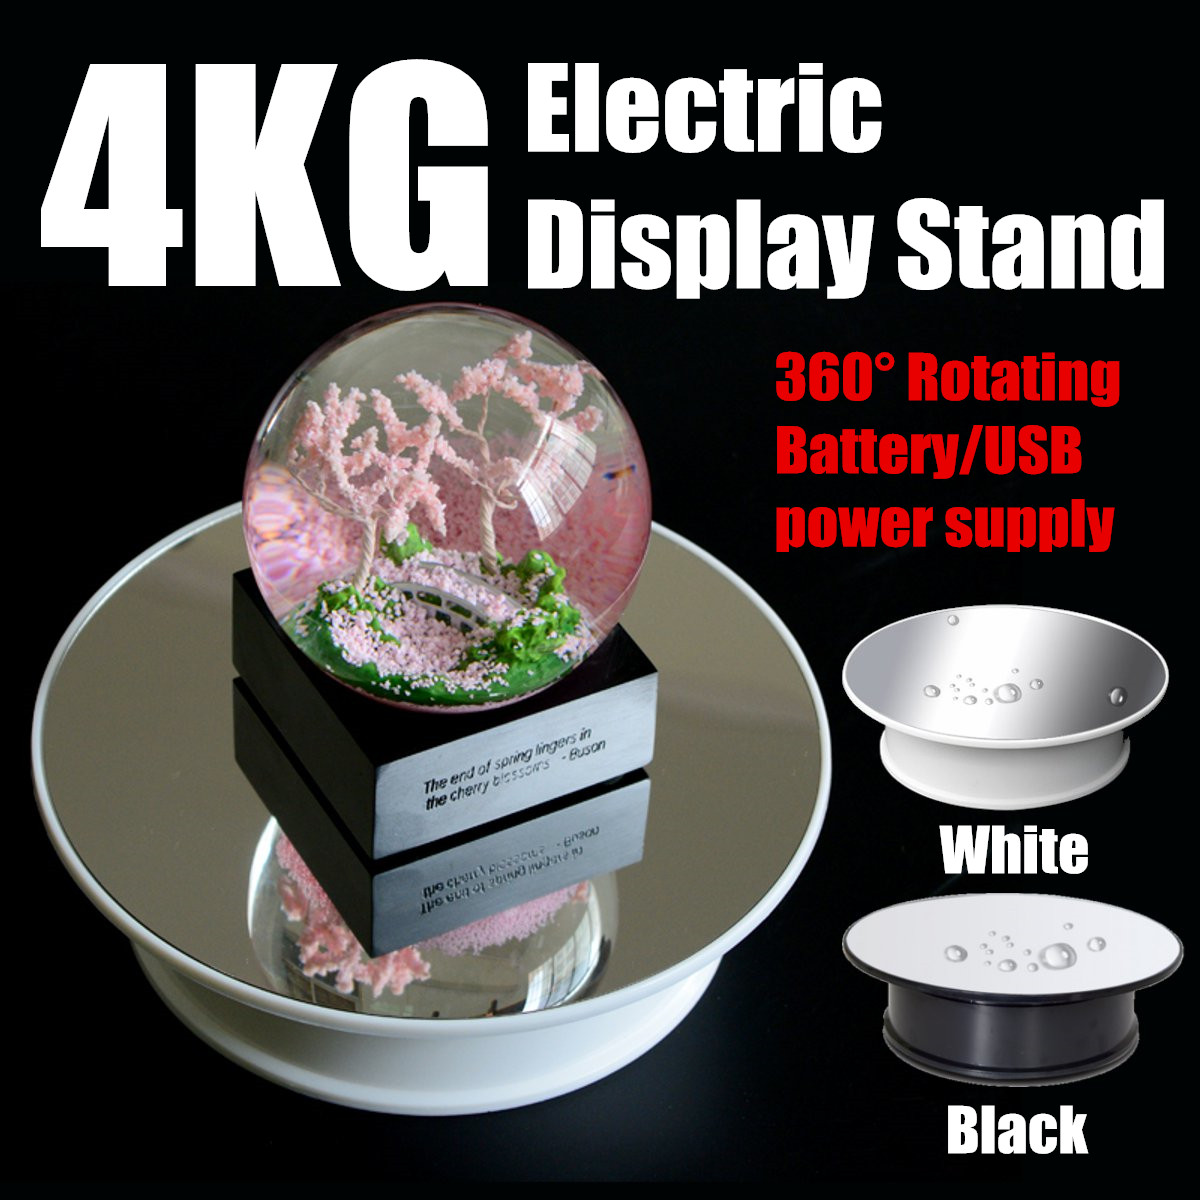 360 Degree Electric Turntable Rotary Jewelry Display Stand Mirror Top Motorized Showcase Organizer Jewelry Accessories Kit